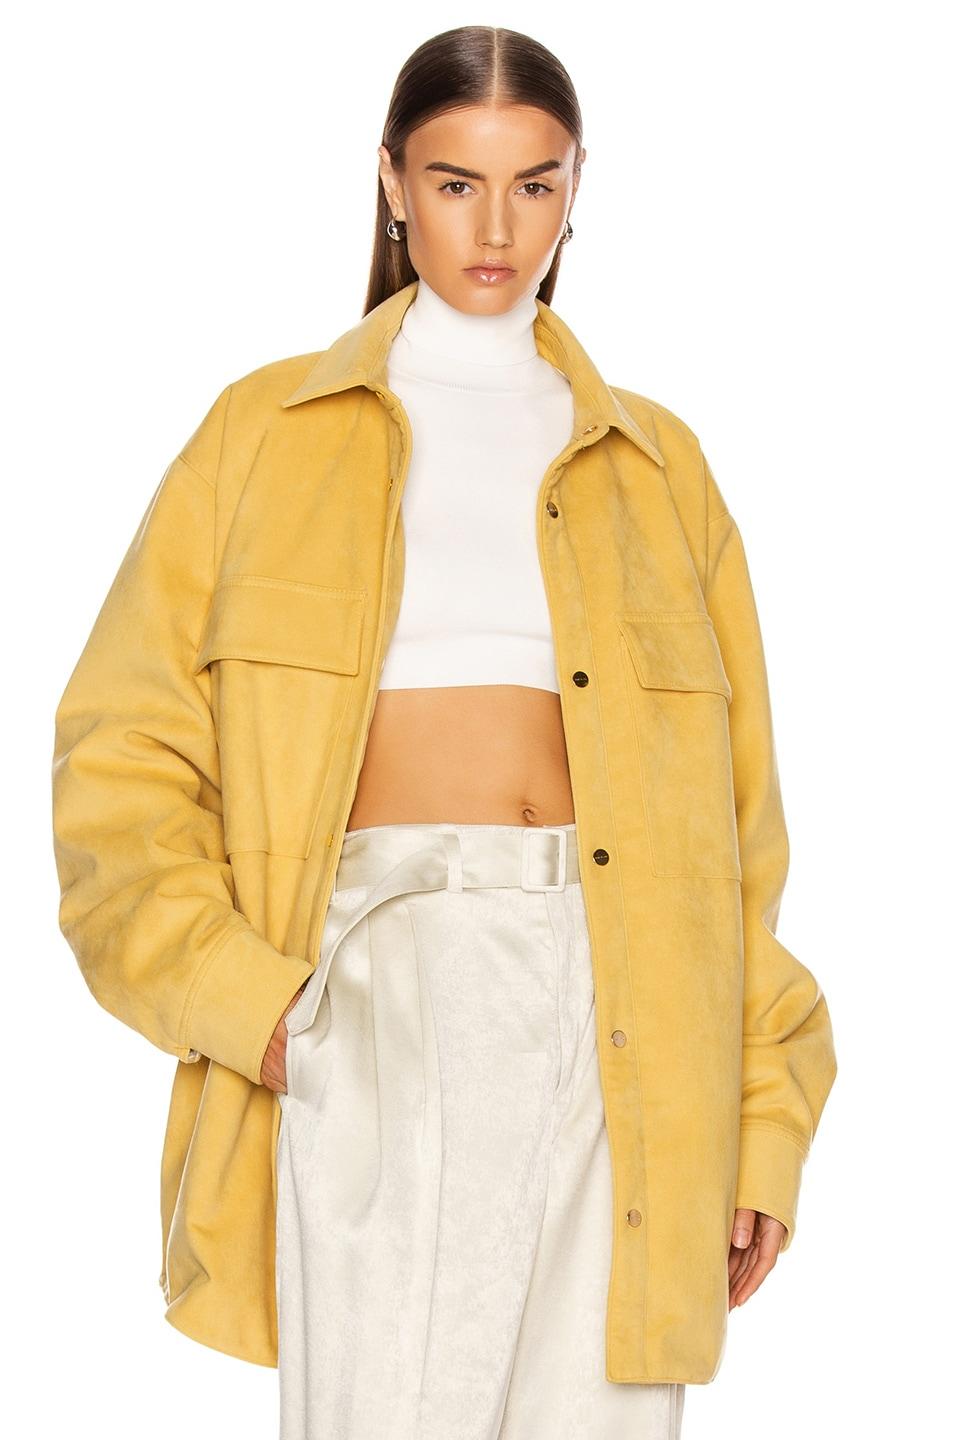 Image 1 of Fear of God Suede Shirt Jacket in Garden Glove Yellow